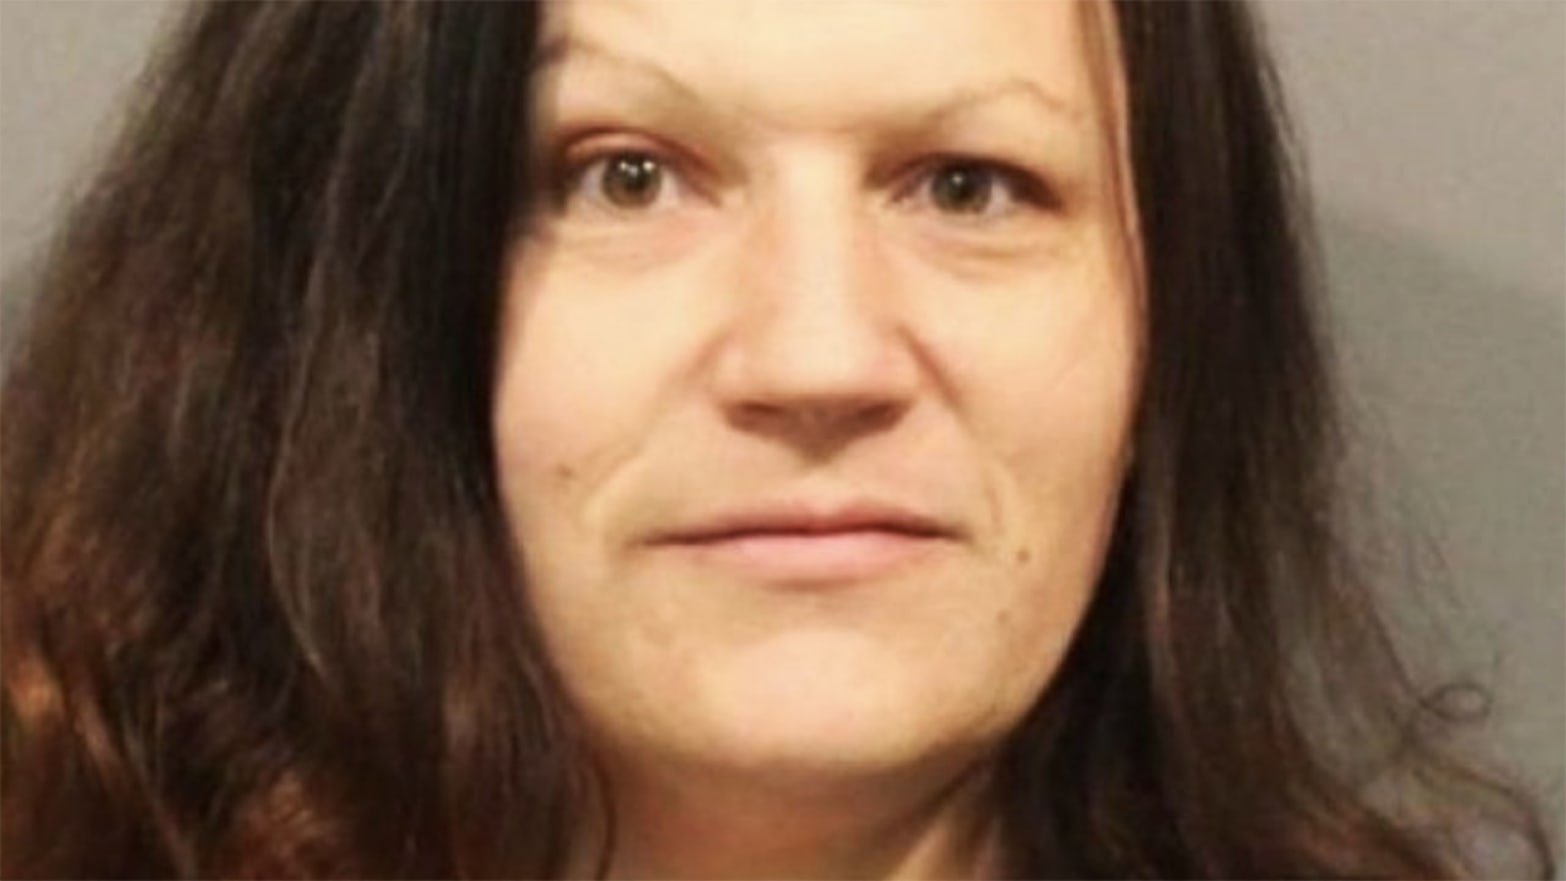 Woman Killed Lover, Then Husband—And Maybe Others